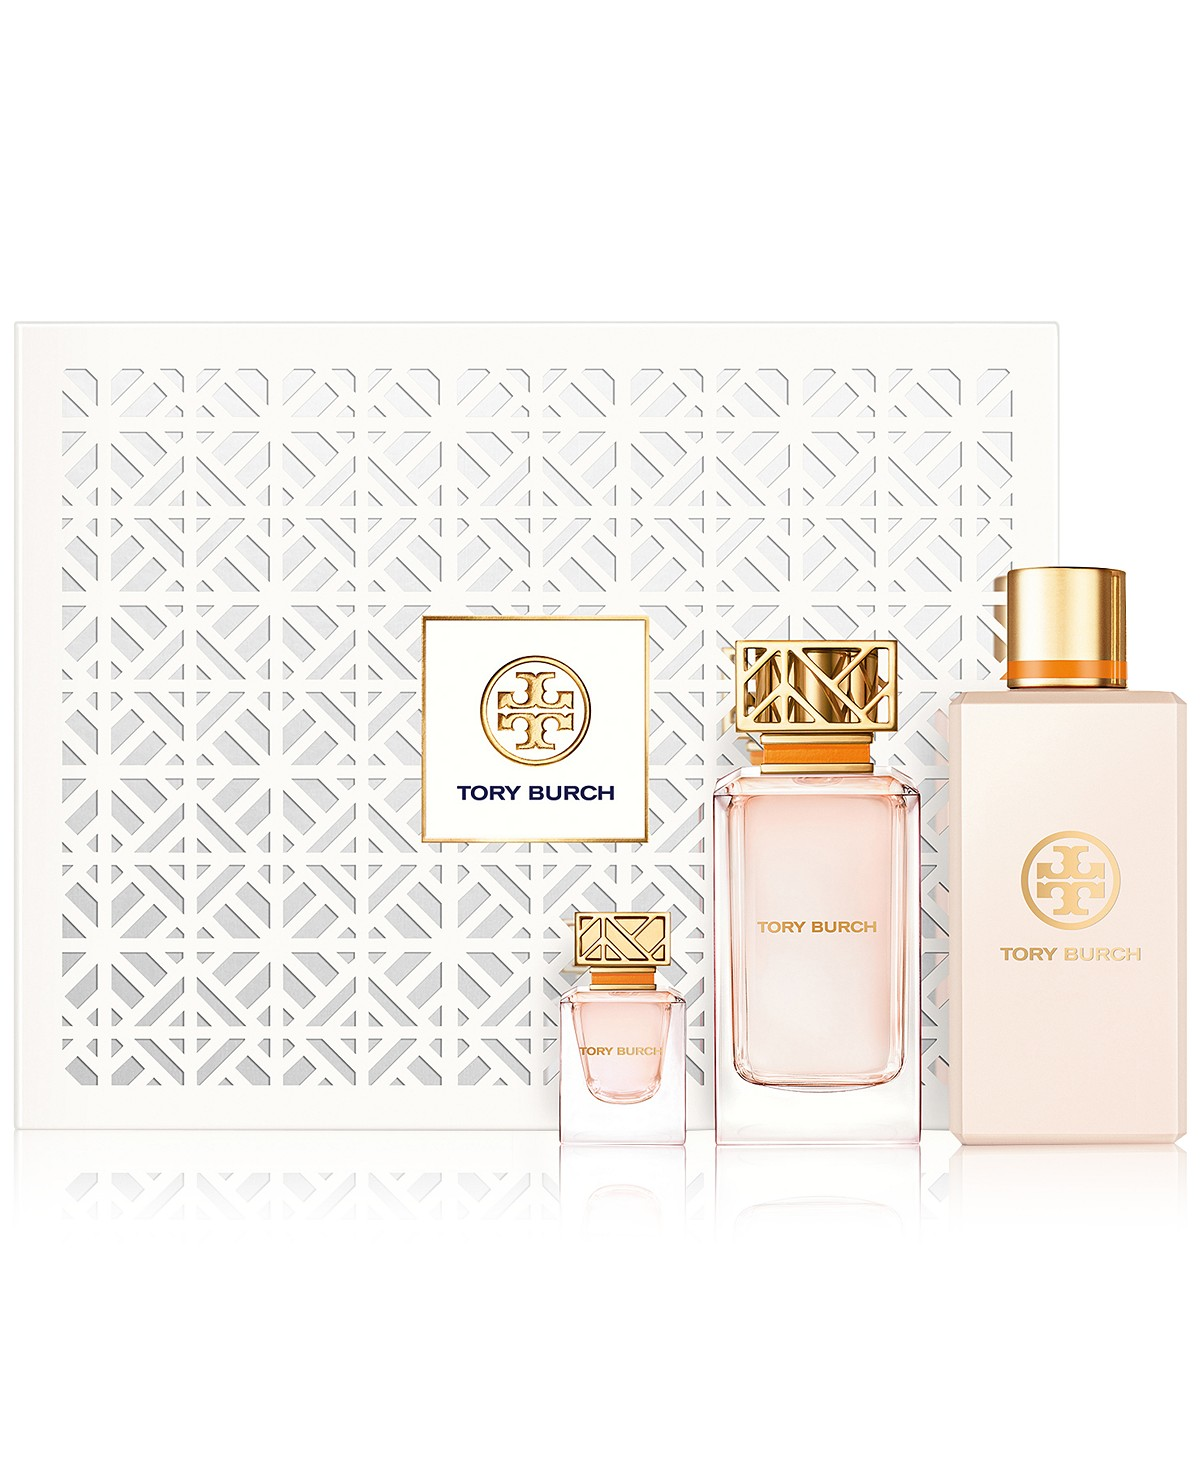 Tory Burch's Signature Collection